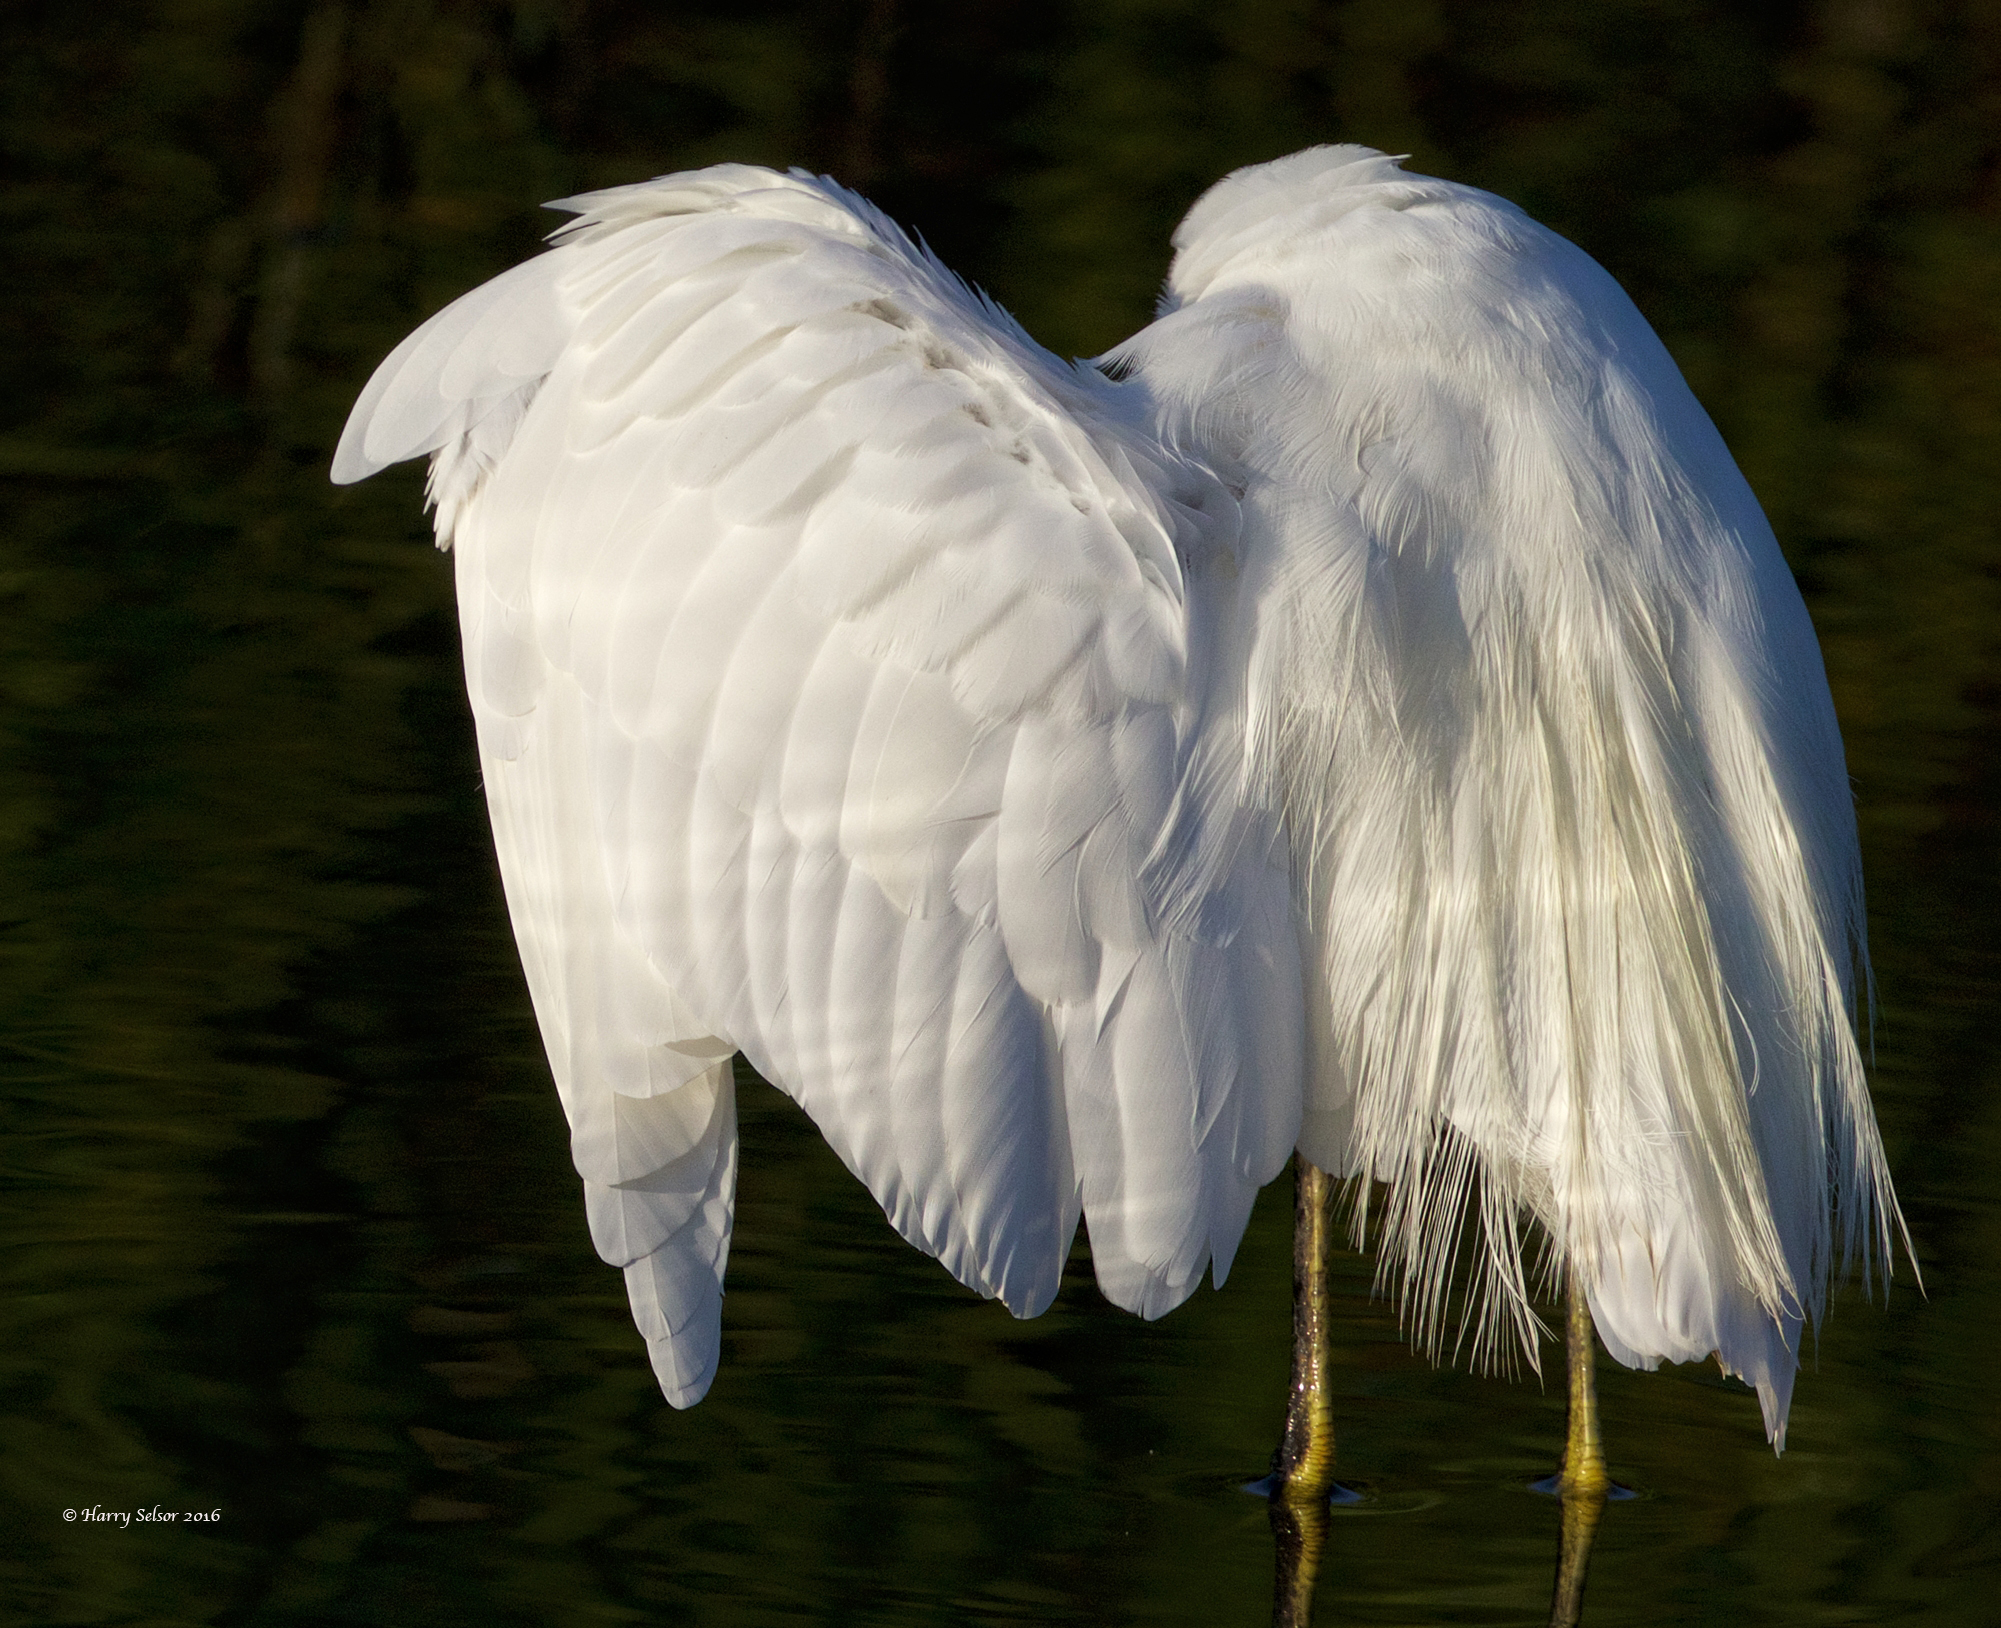 Snowy Wings...a feathery delight